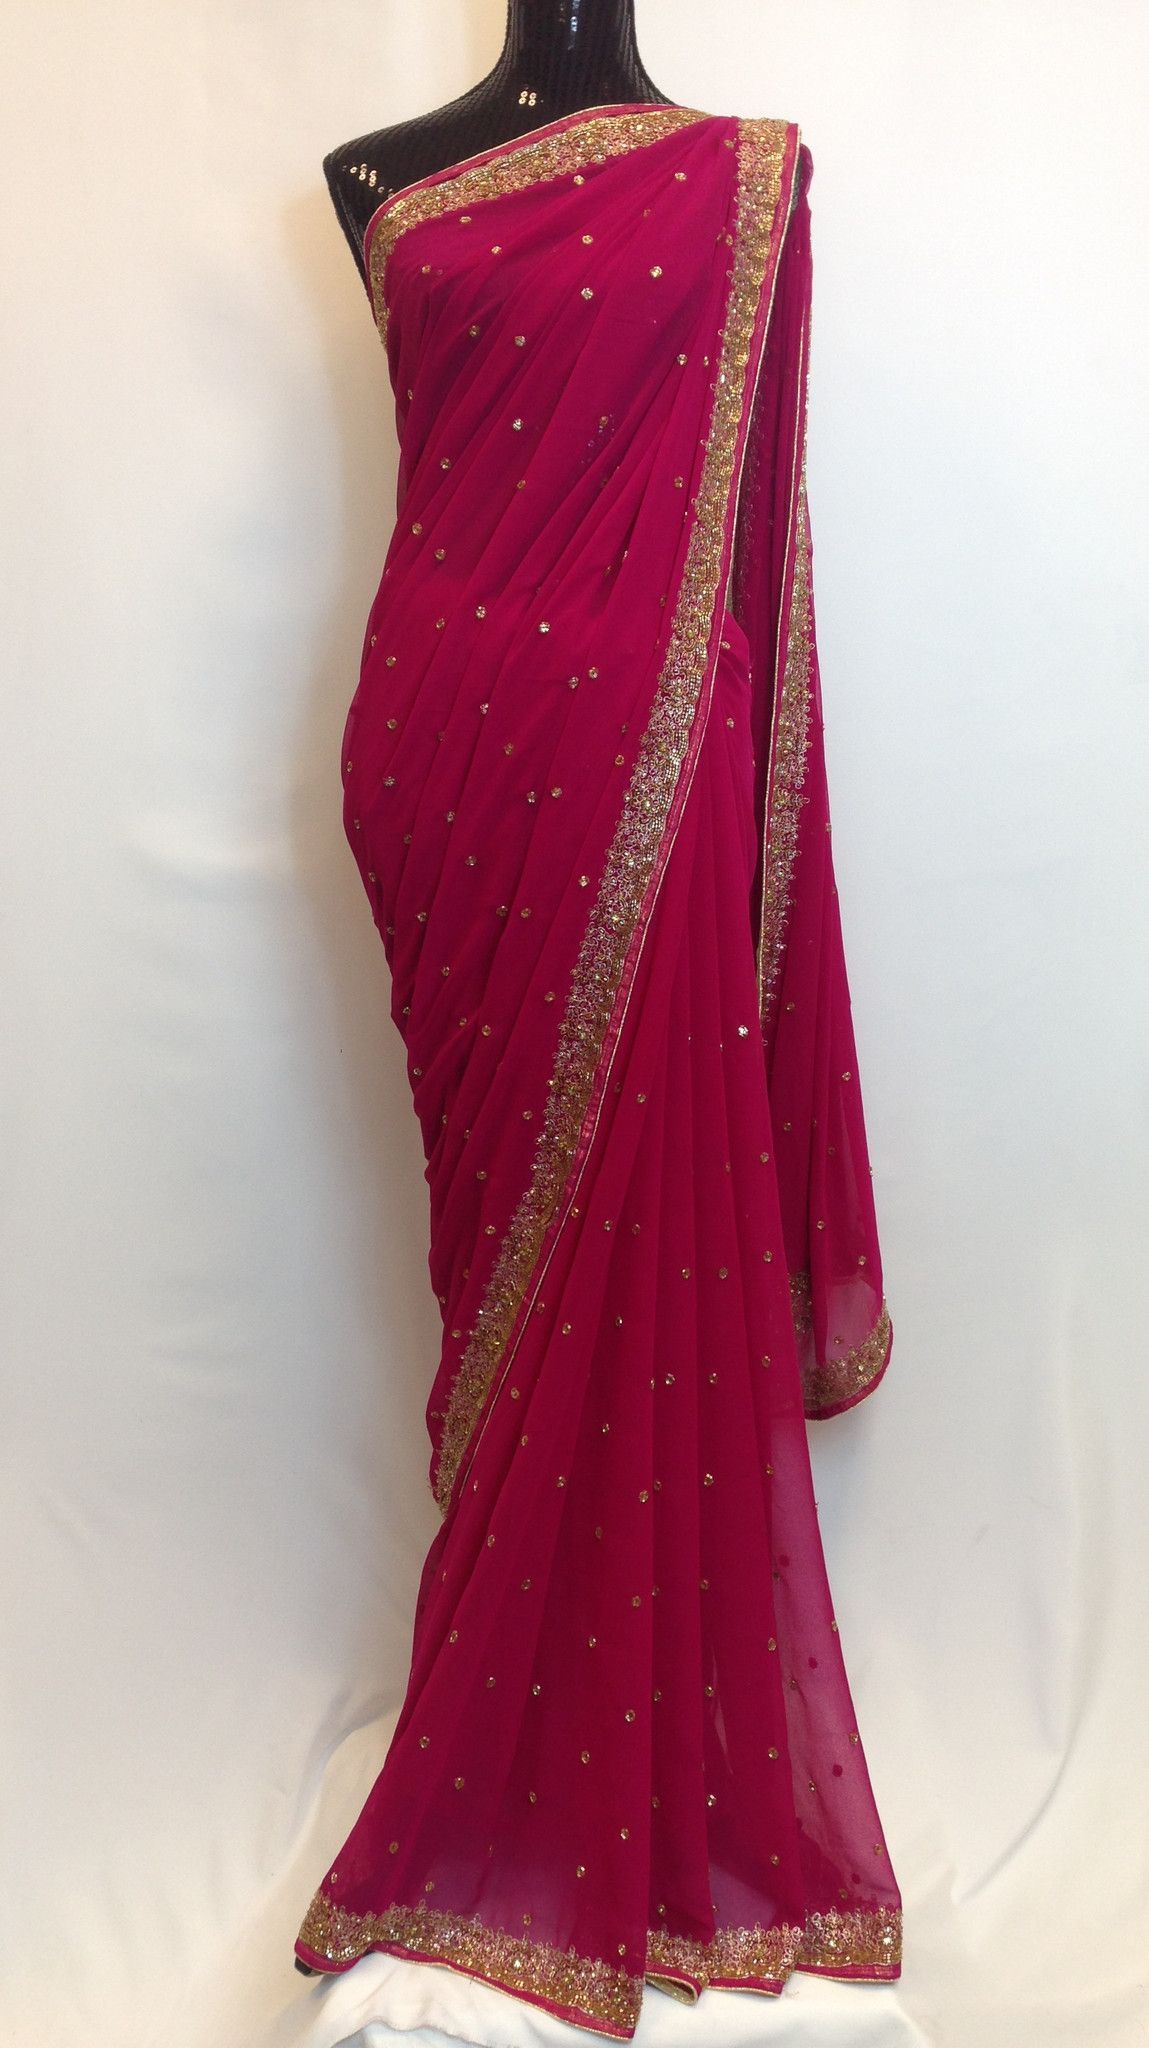 fcdda0e936 Stylish and gorgeous Georgette pink saree with beautiful golden blue  contrast border along with hand designed embroidered beaded motifs makes  this indian ...